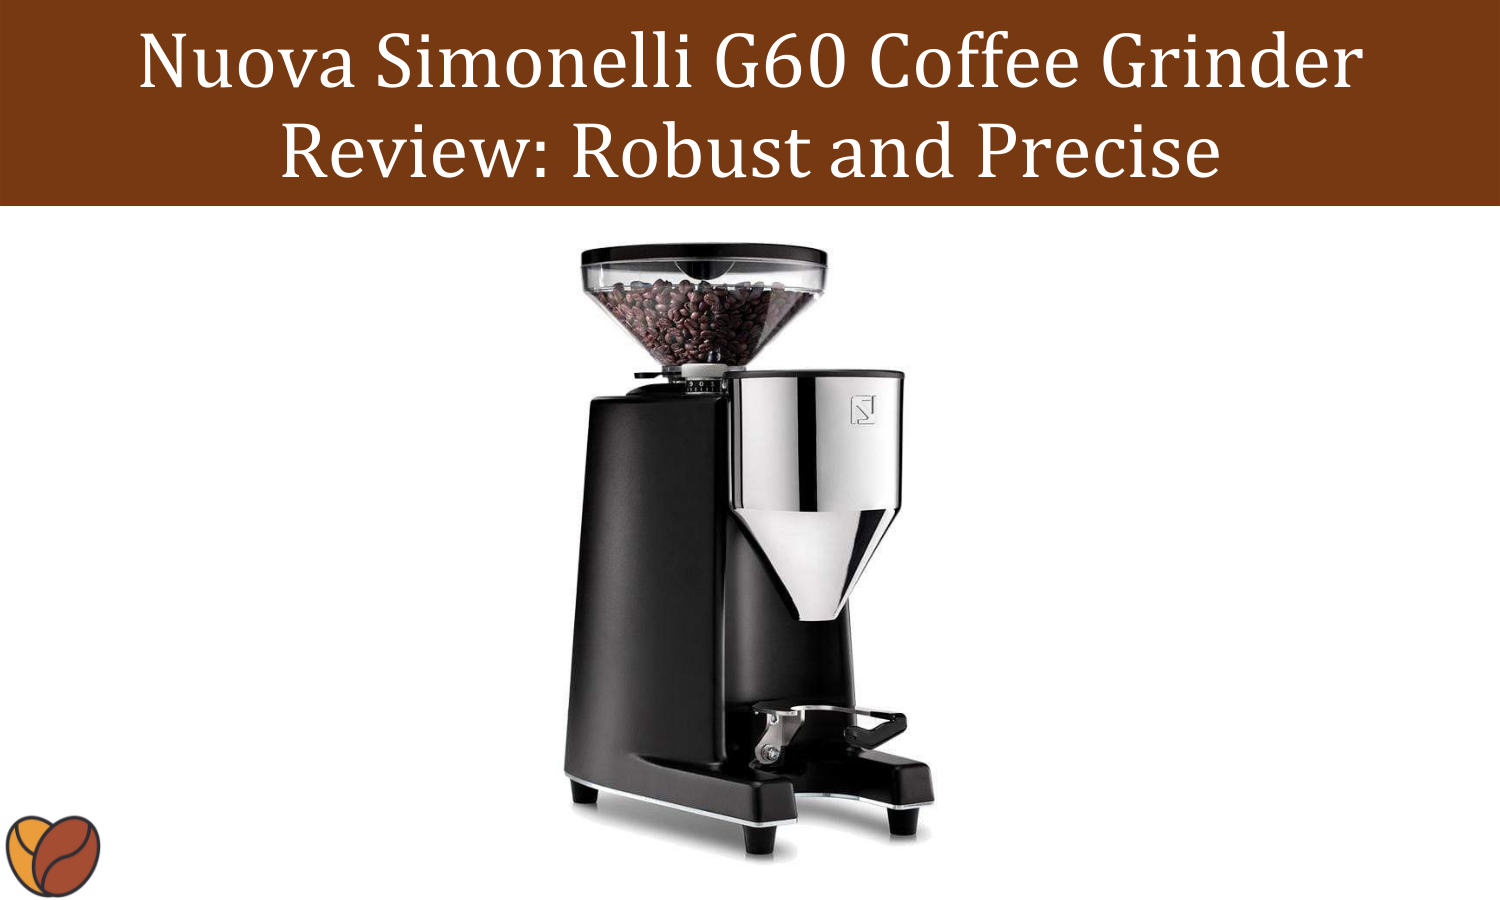 nuova simonelli g60 coffee grinder review